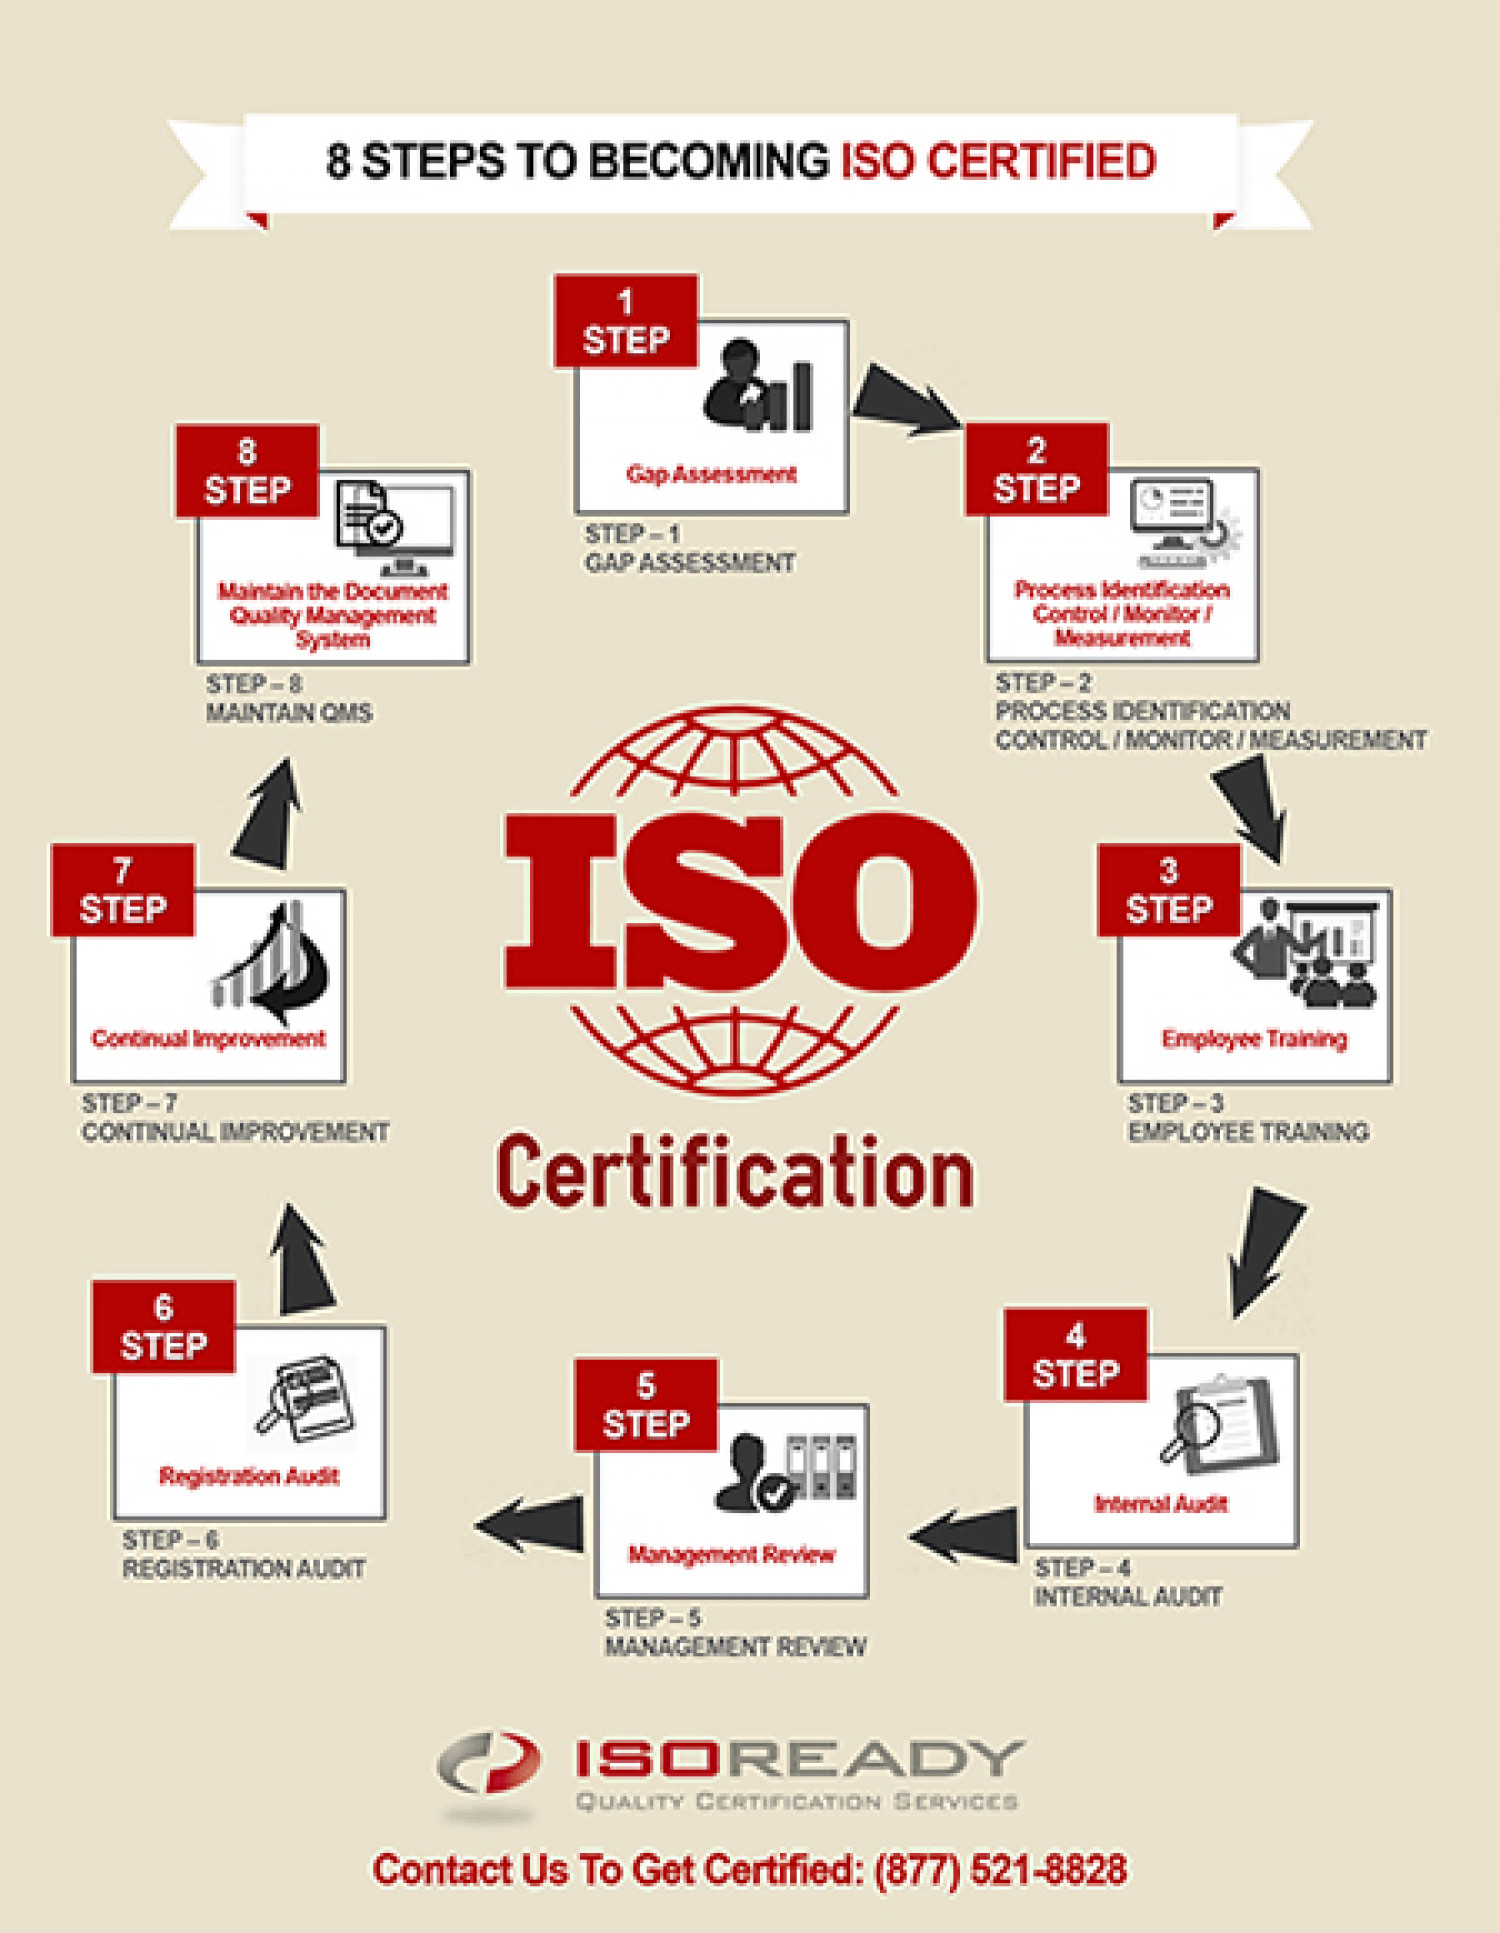 8 Steps To Becoming ISO Certified Infographic